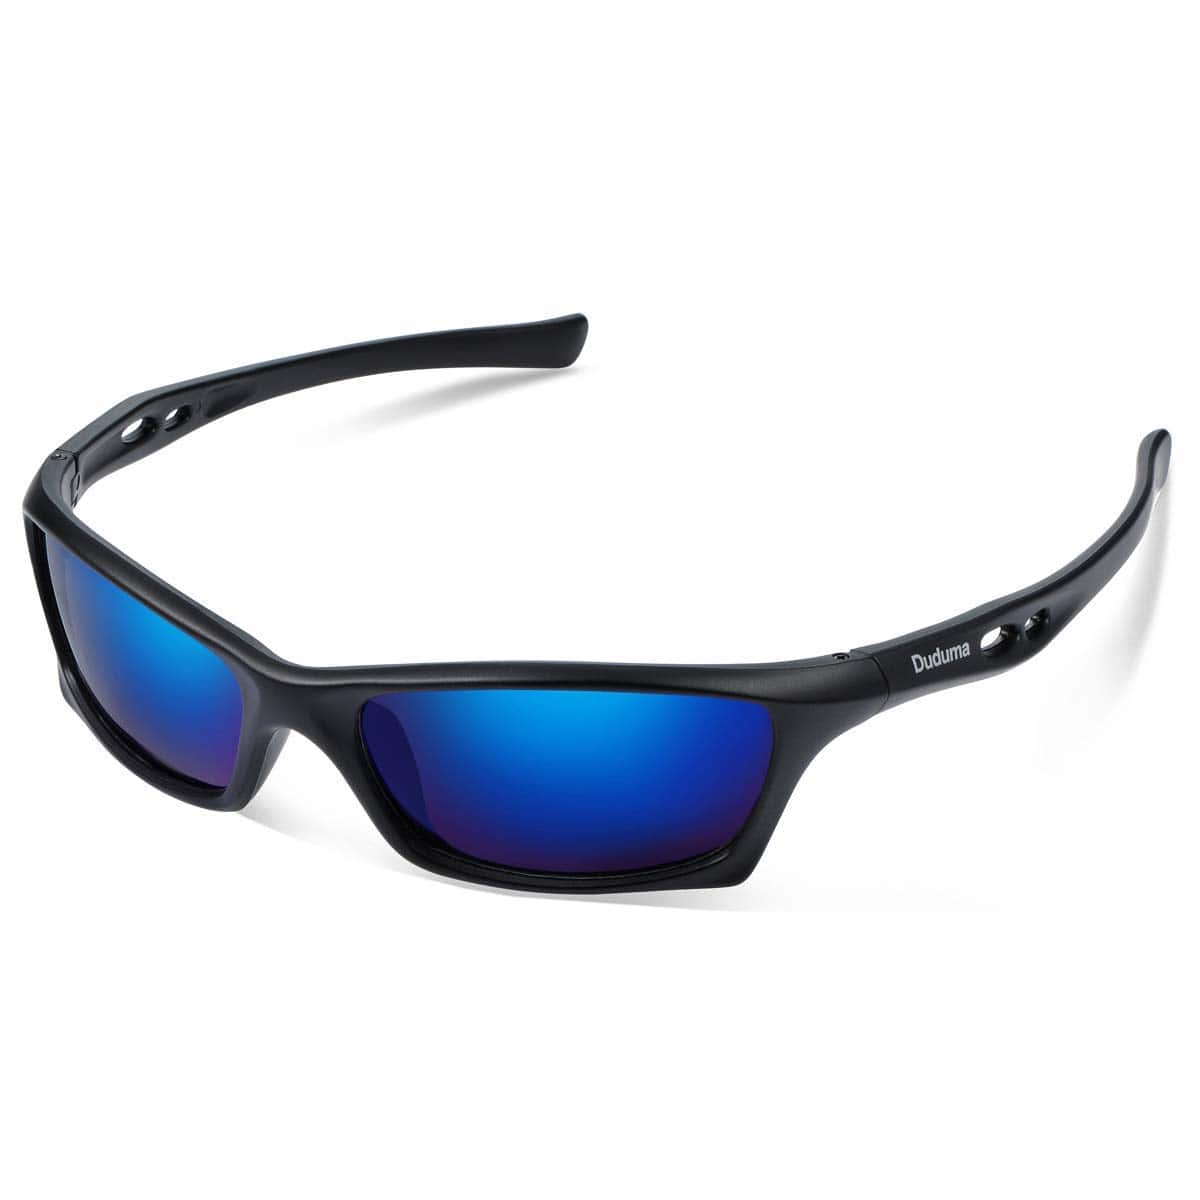 e2fcb5c0965 Duduma Mens and Womens Polarized Sports Sunglasses  7.99AC Amazon ...